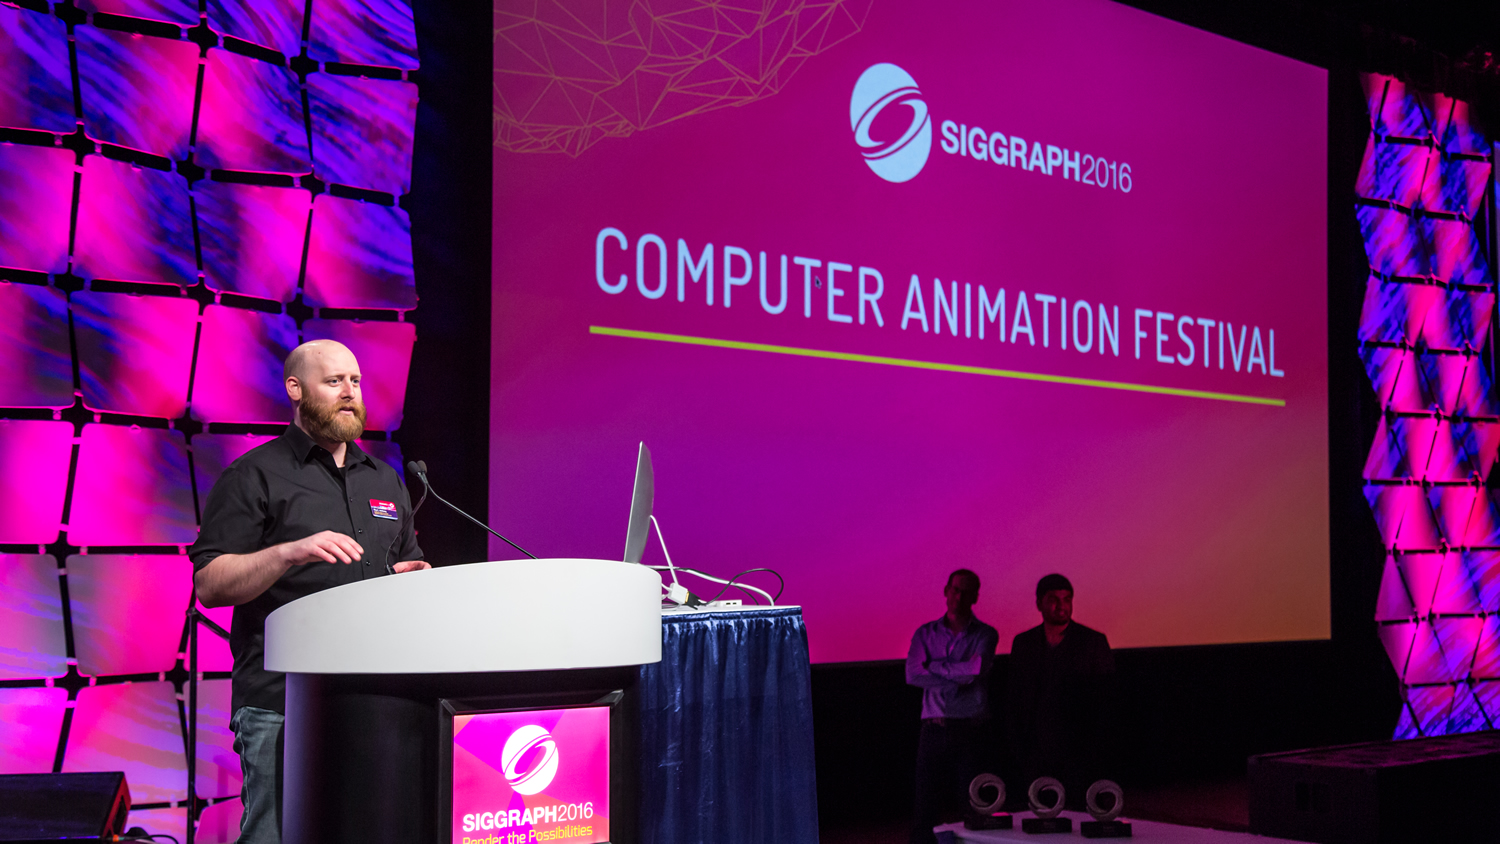 Wordless Wednesday: SIGGRAPH 2016 in Images